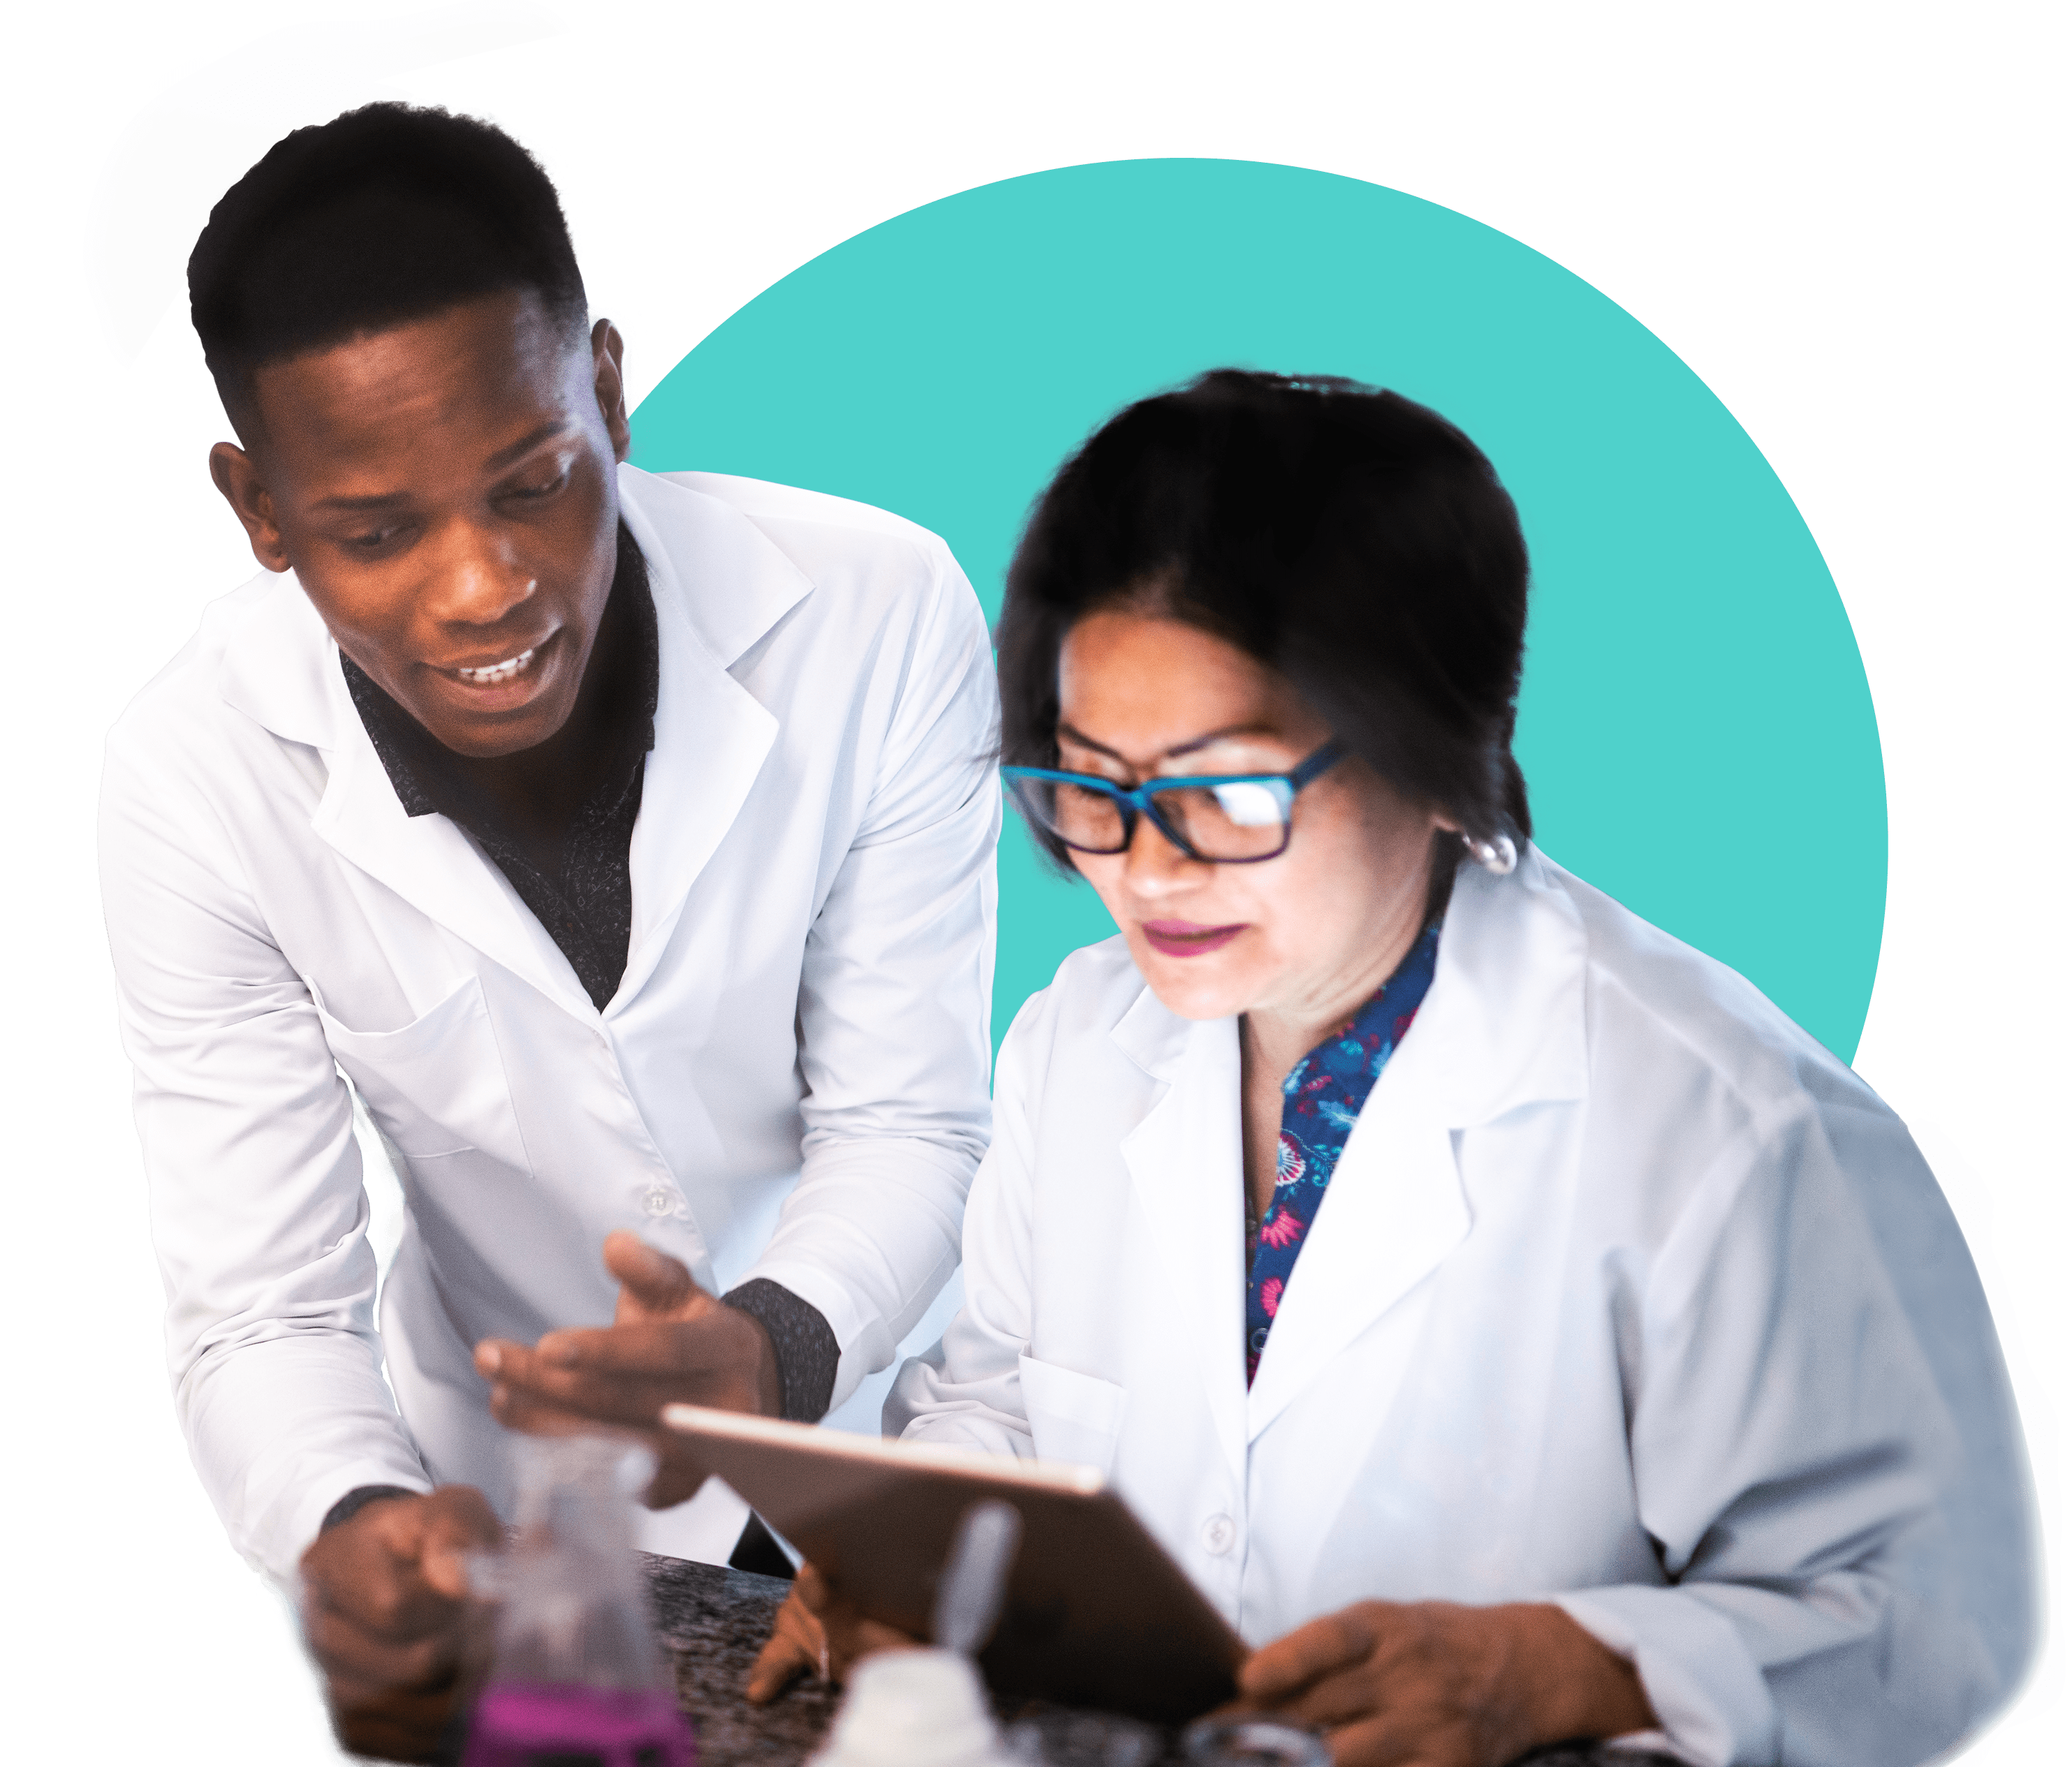 Man and woman lab scientists